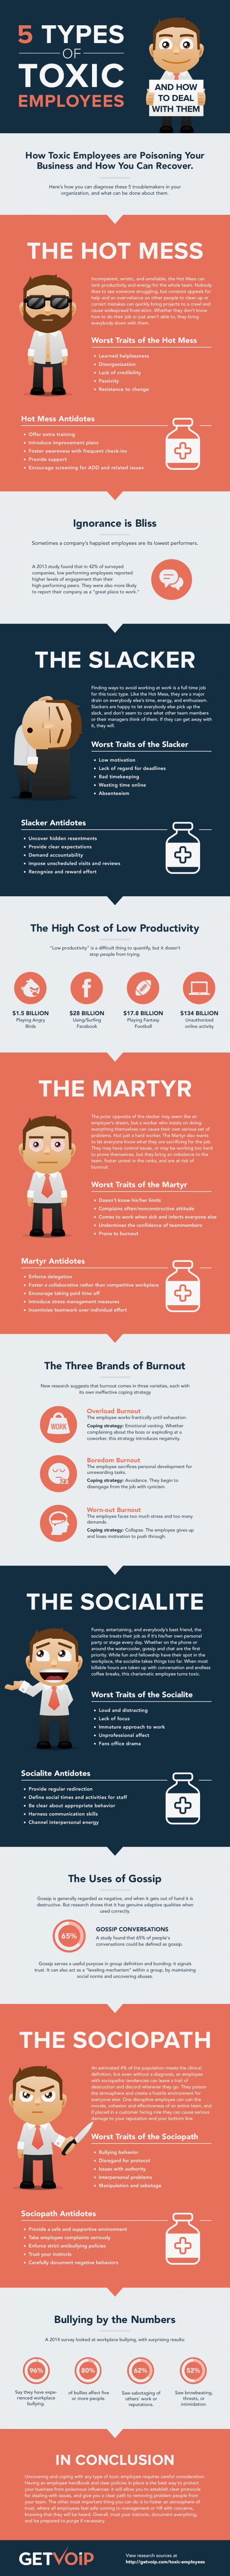 Five types of toxic employees-and how to recover.